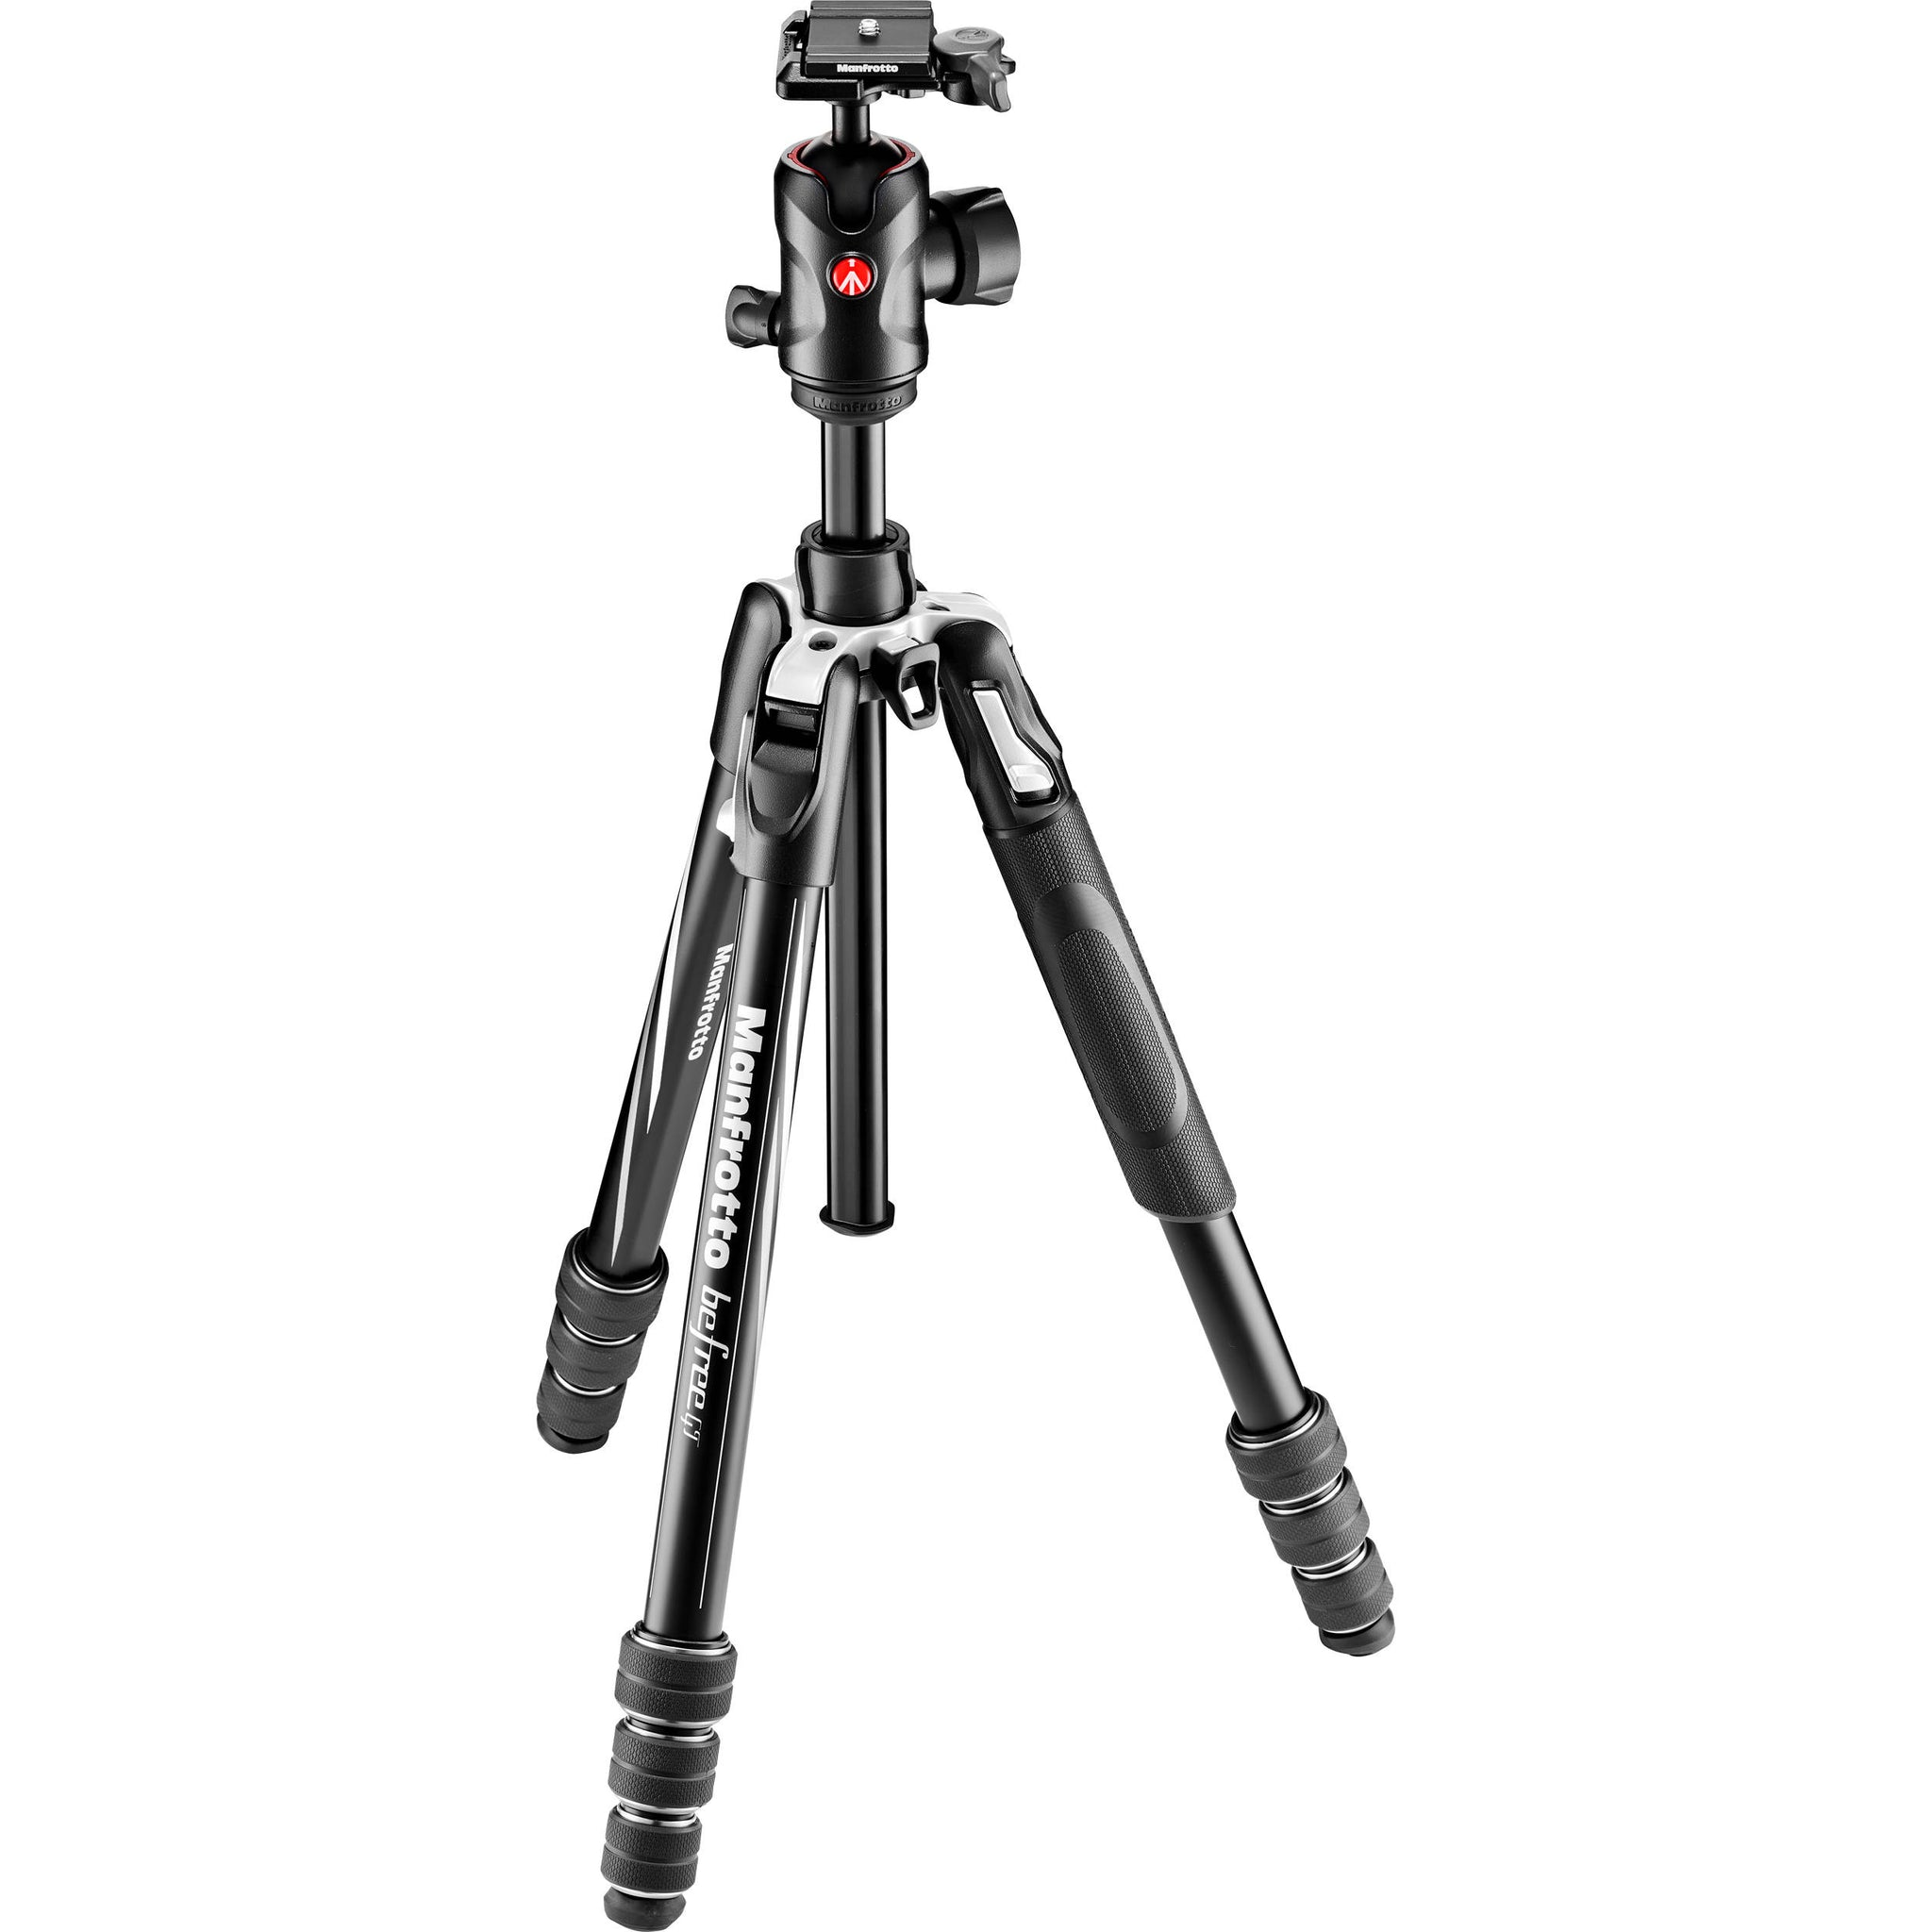 Manfrotto Befree GT Travel Aluminum Tripod with 496 Ball Head (Black)